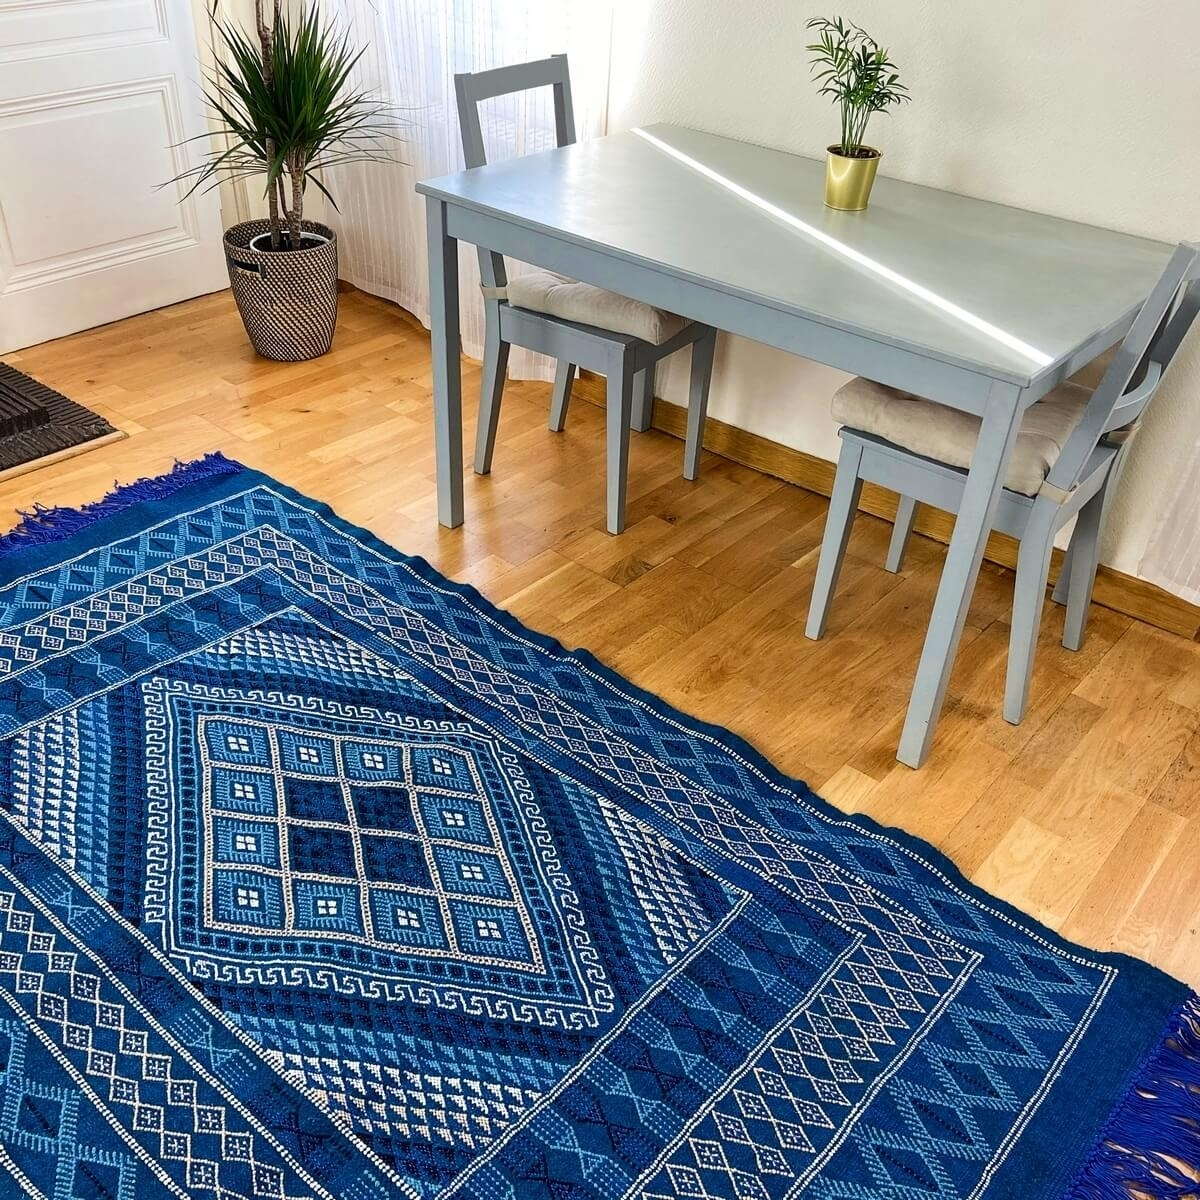 Berber carpet Rug Margoum Jed 120x212 cm Blue/White (Handmade, Wool, Tunisia) Tunisian margoum rug from the city of Kairouan. Re